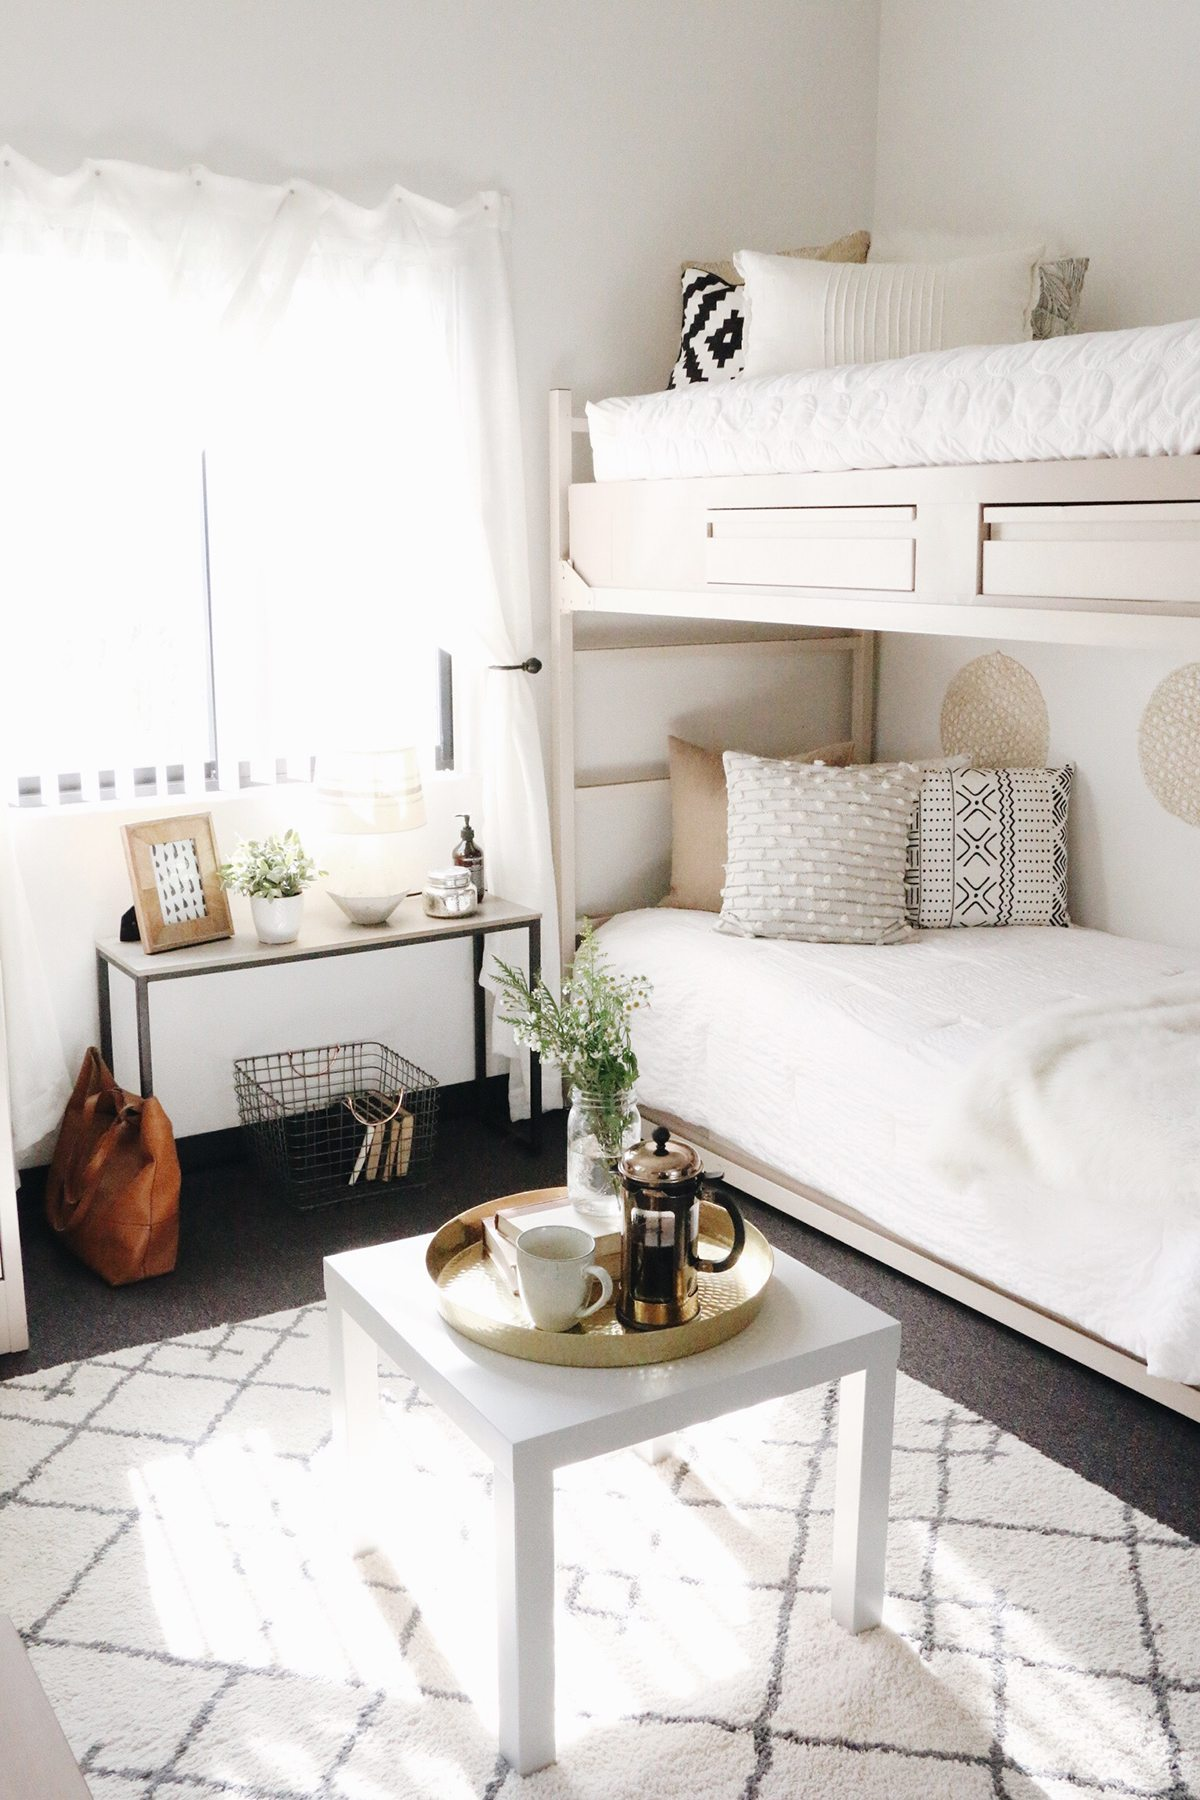 Dorm To Dream Room In Four Easy Steps